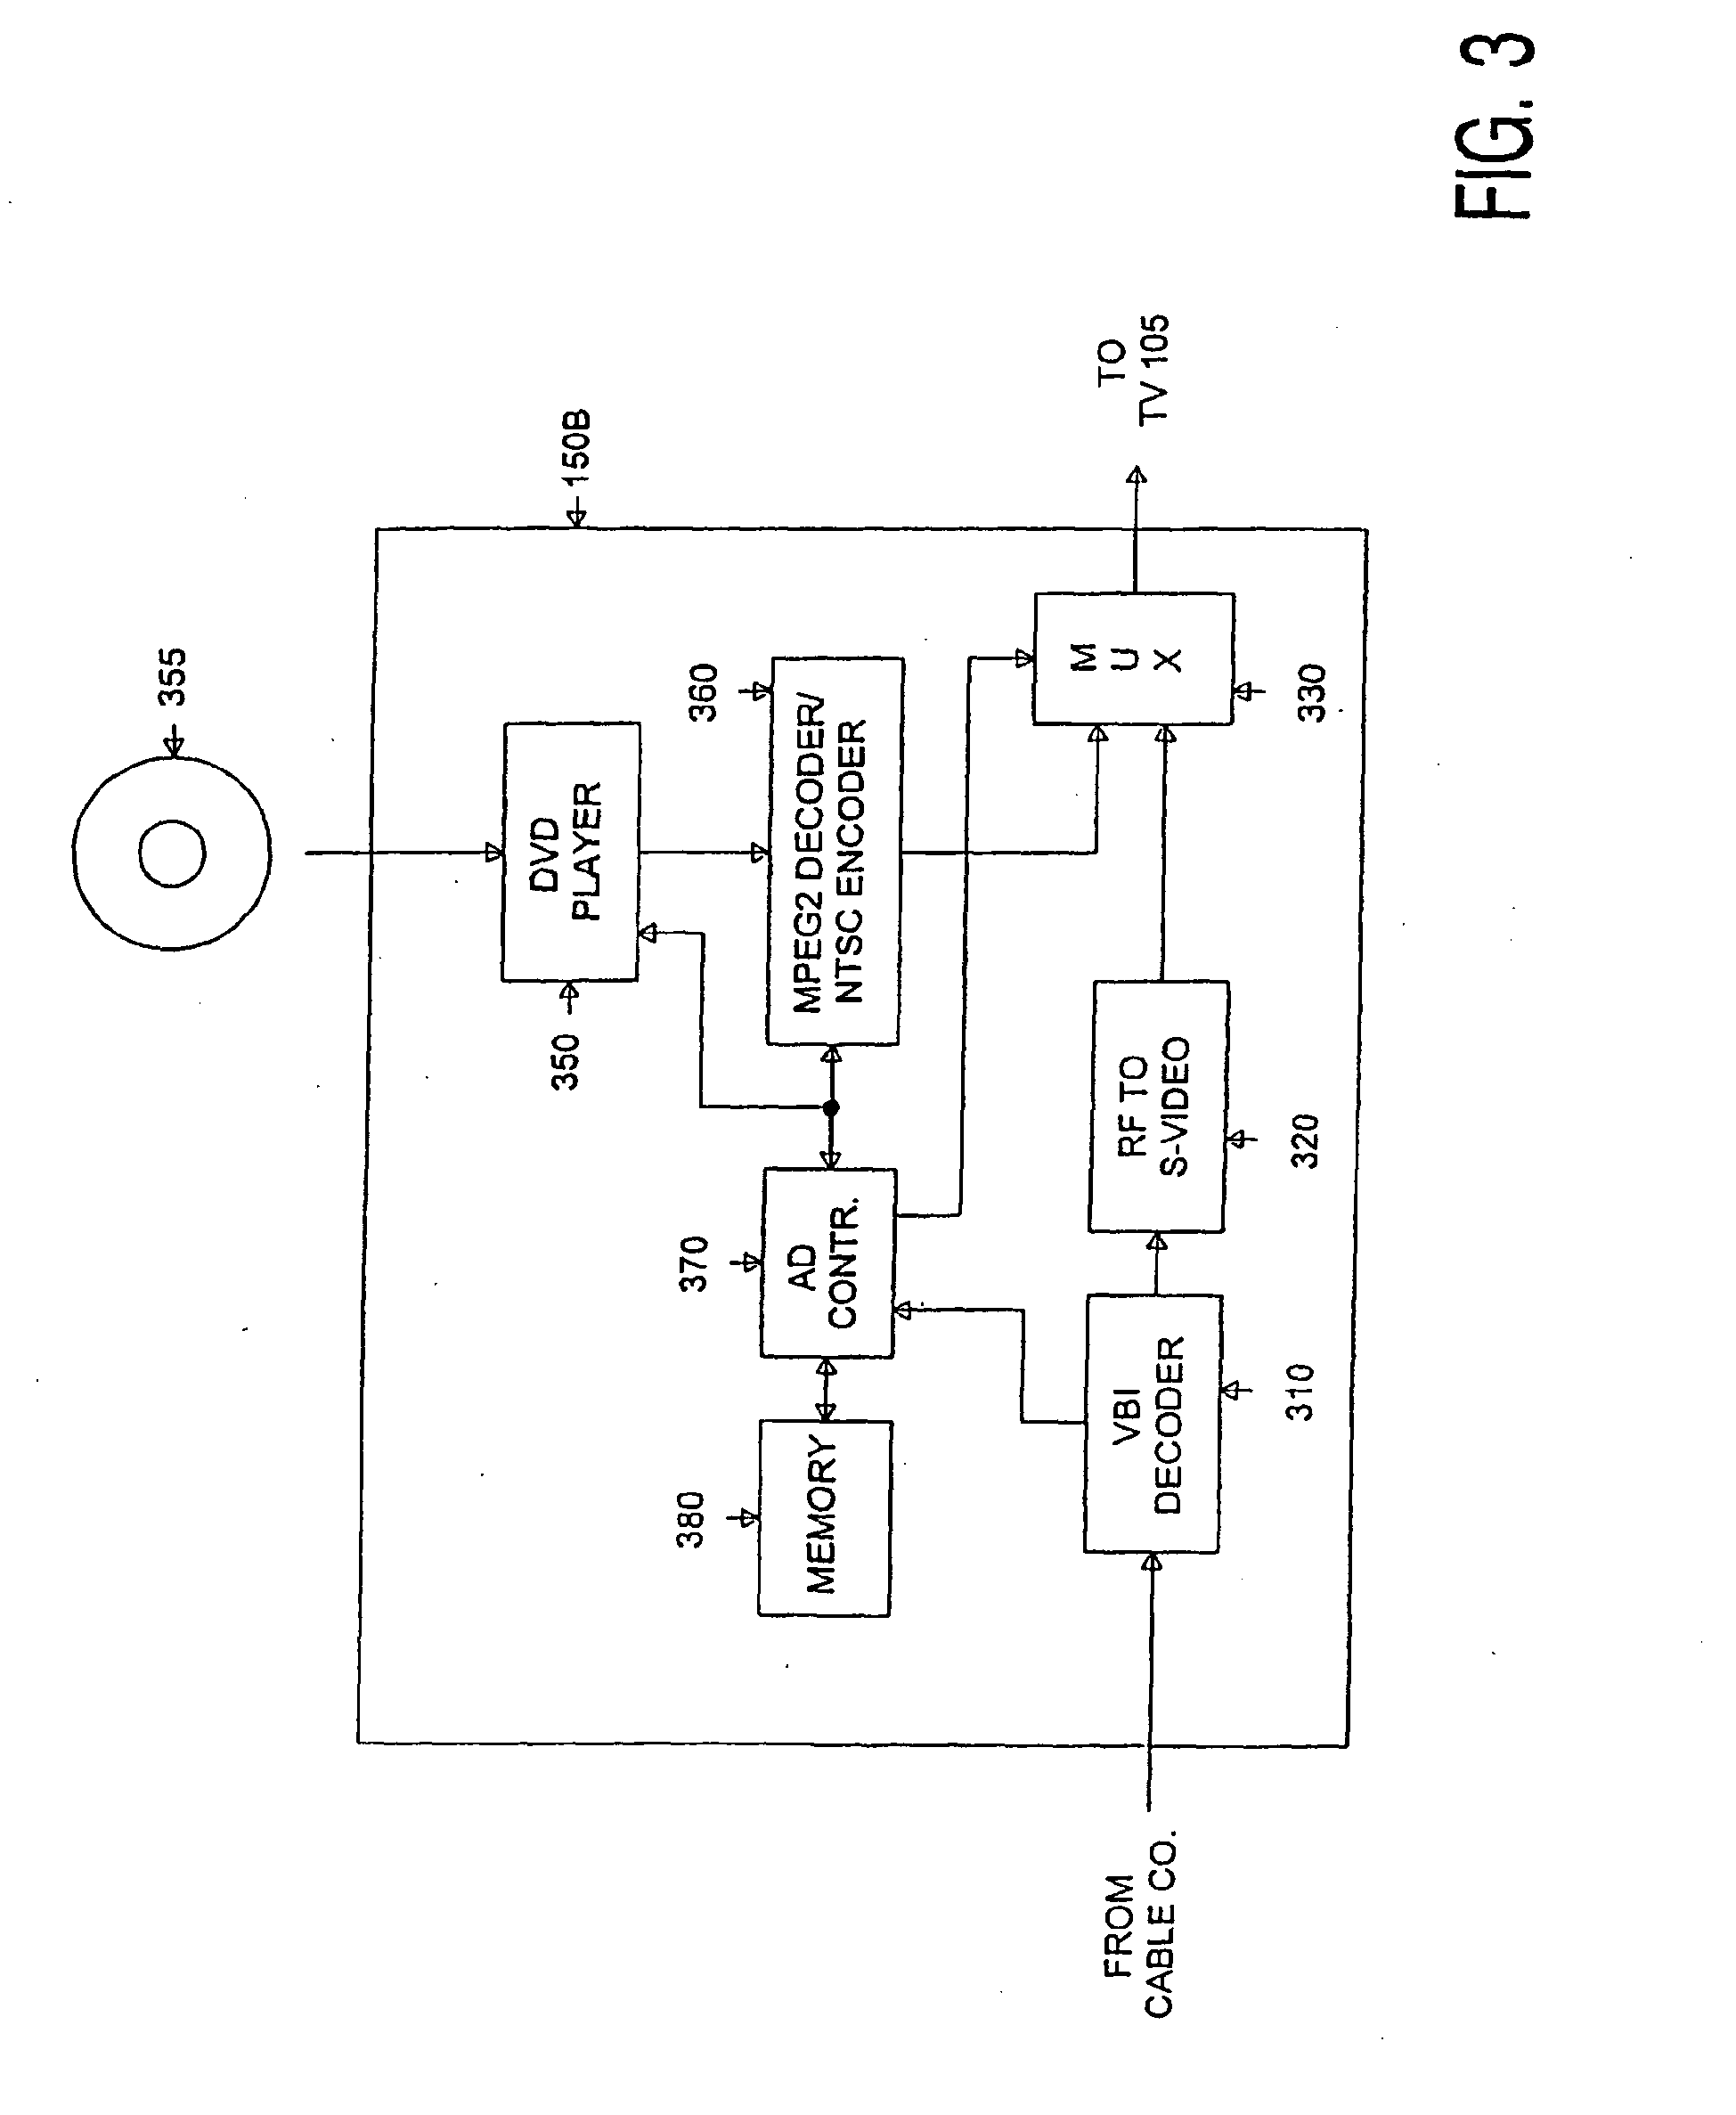 closed loop addressable advertising system and method of